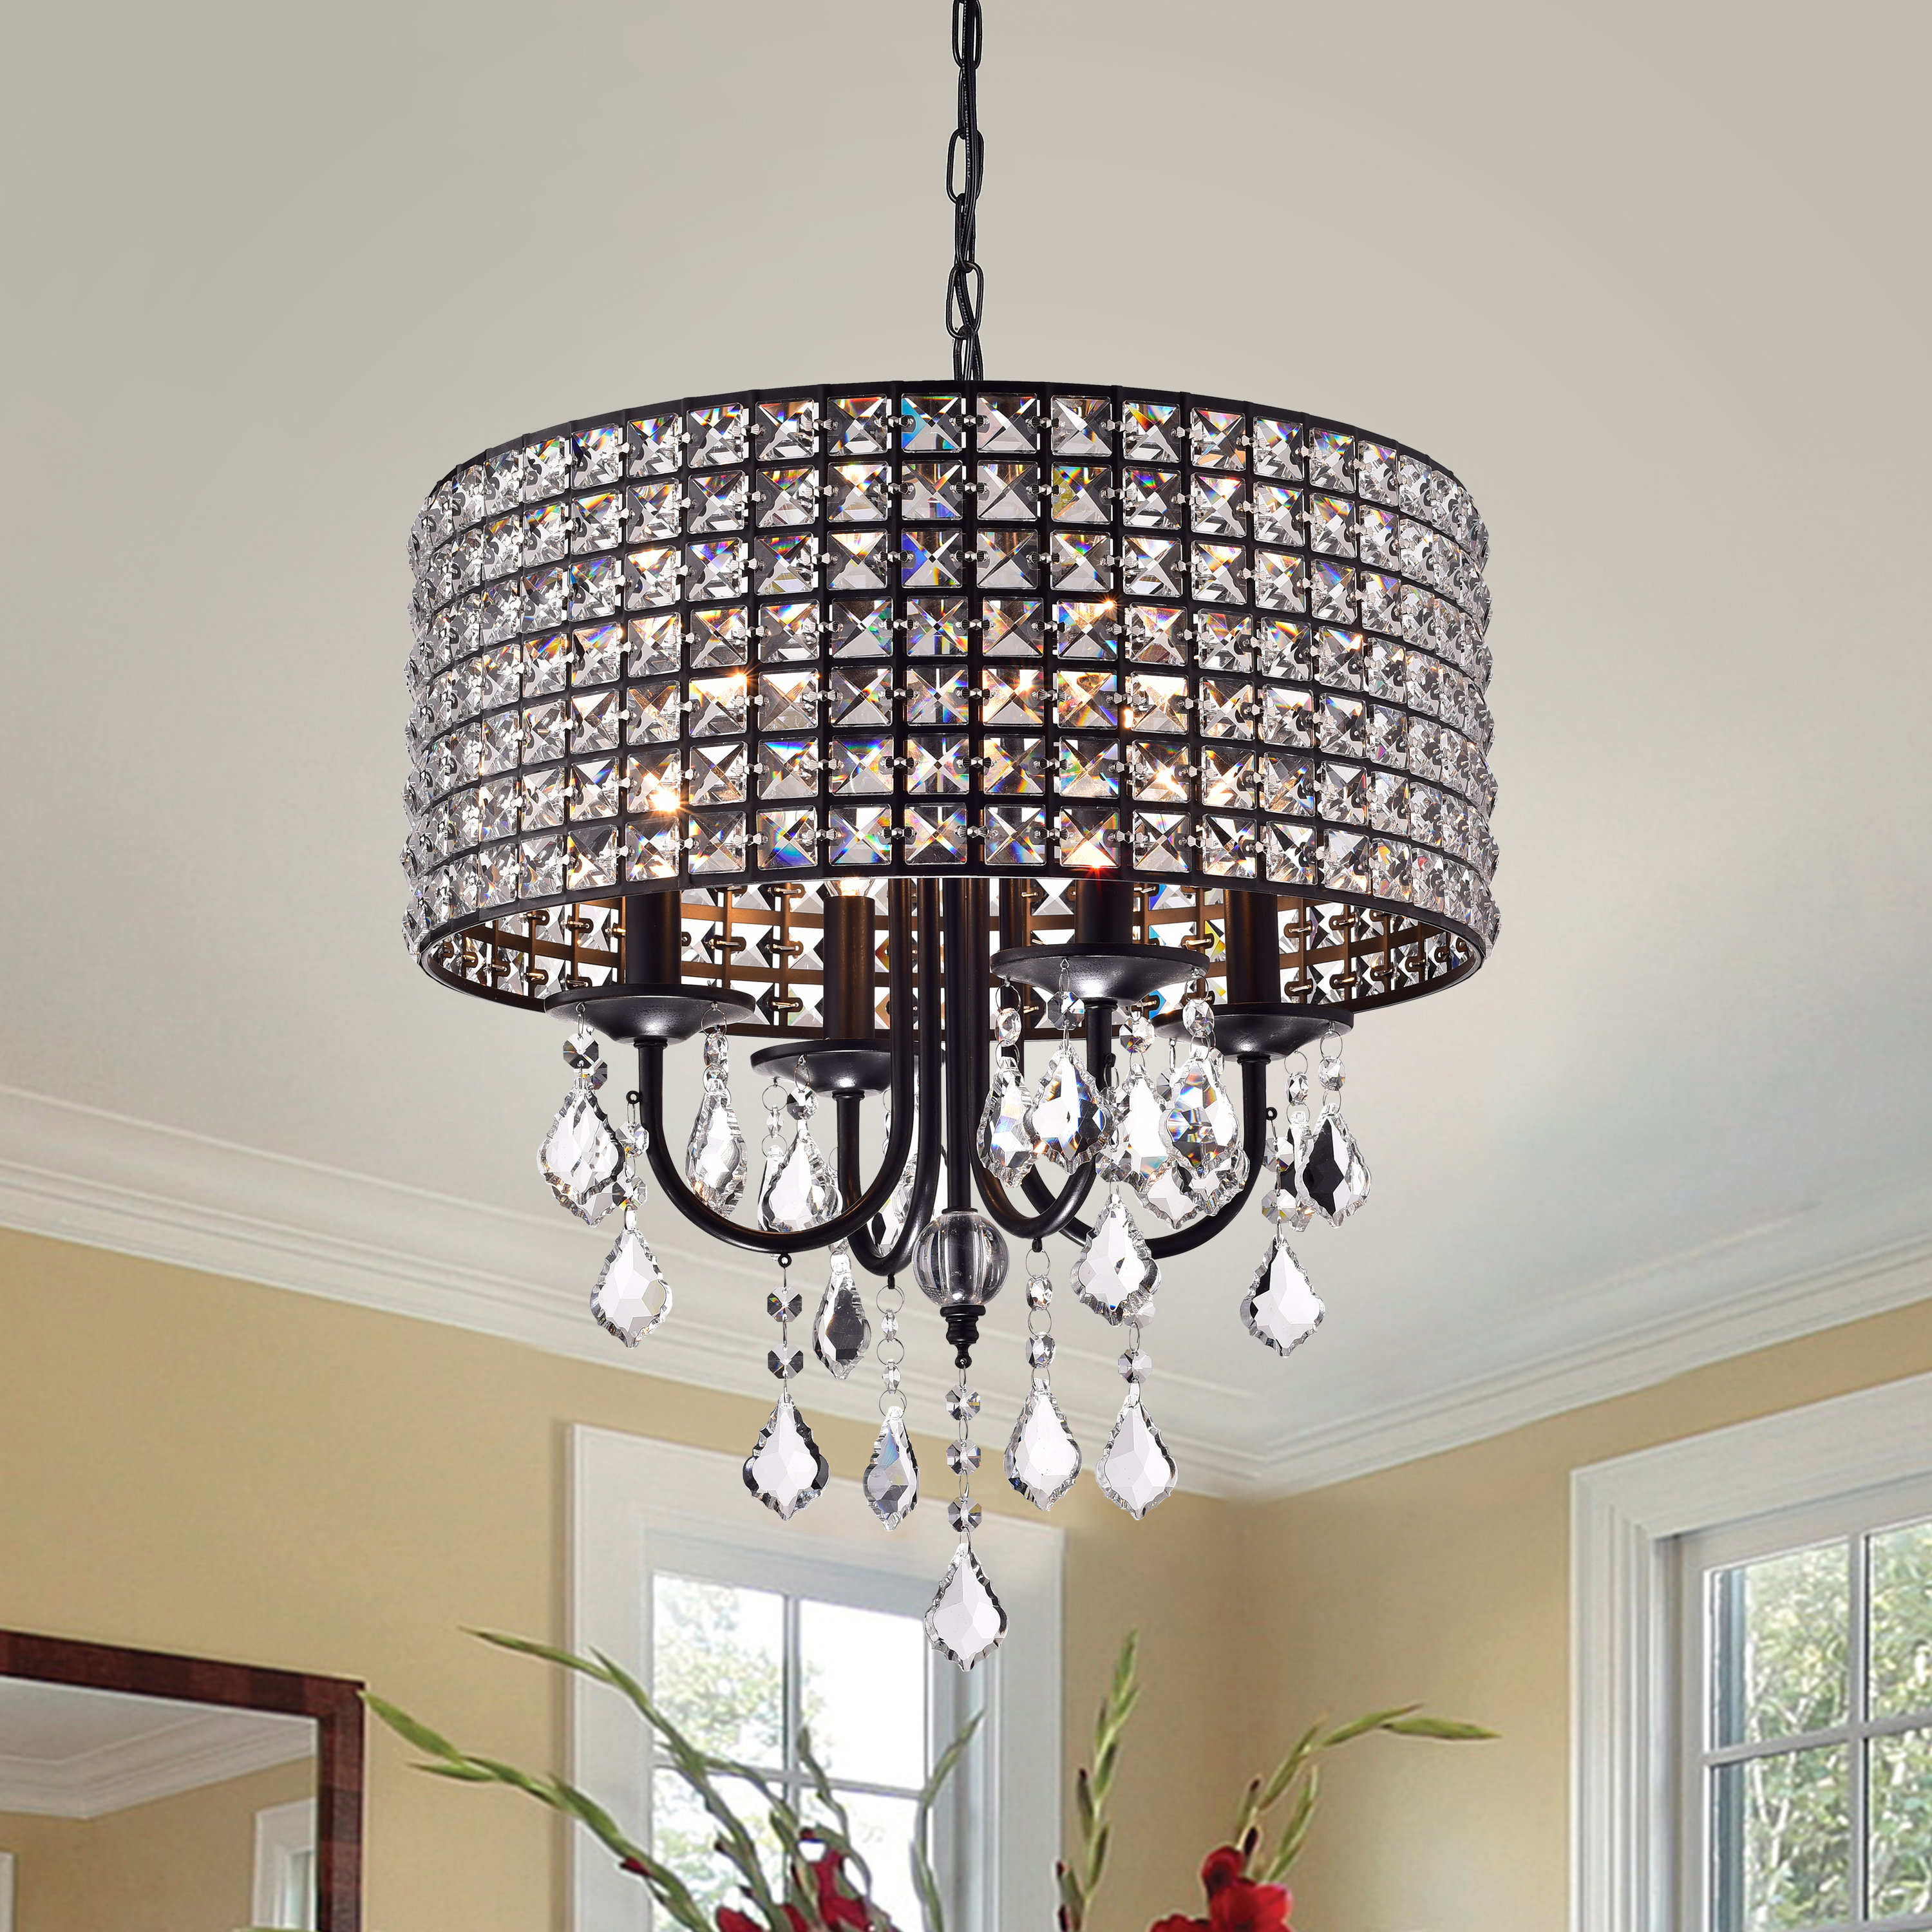 Albano 4 Light Crystal Chandelier With Jill 4 Light Drum Chandeliers (View 10 of 30)